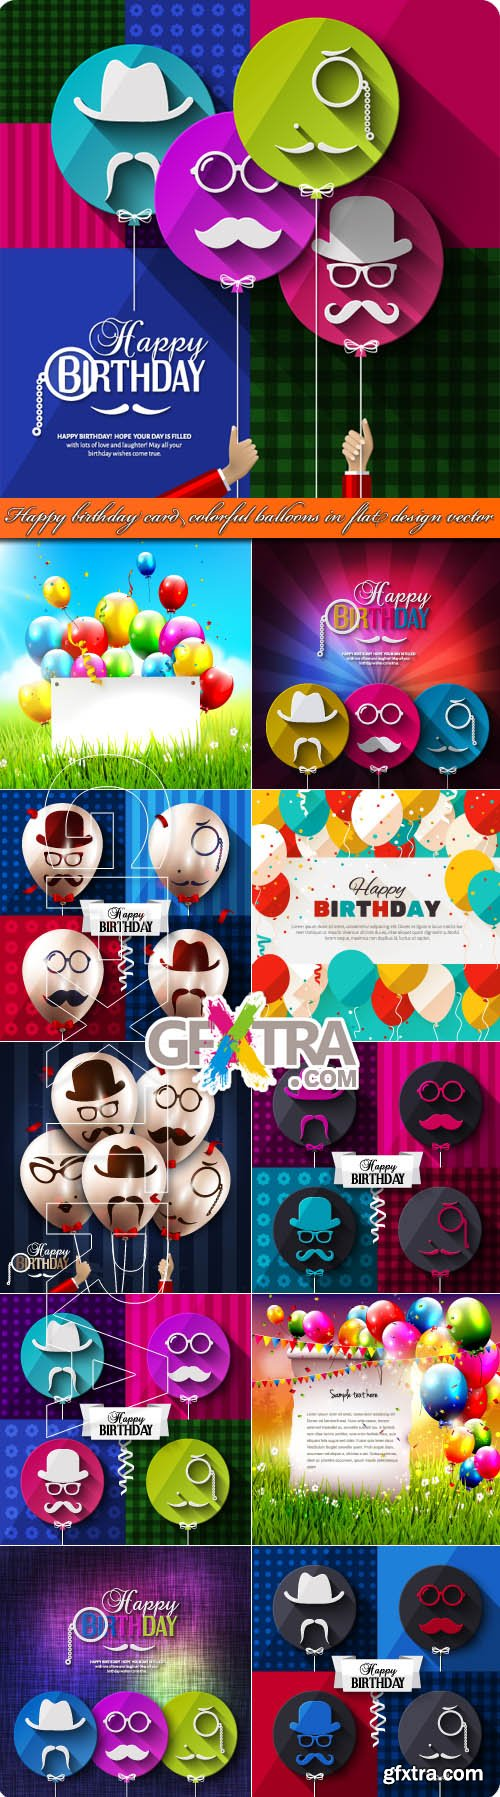 Happy birthday card colorful balloons in flat design vector